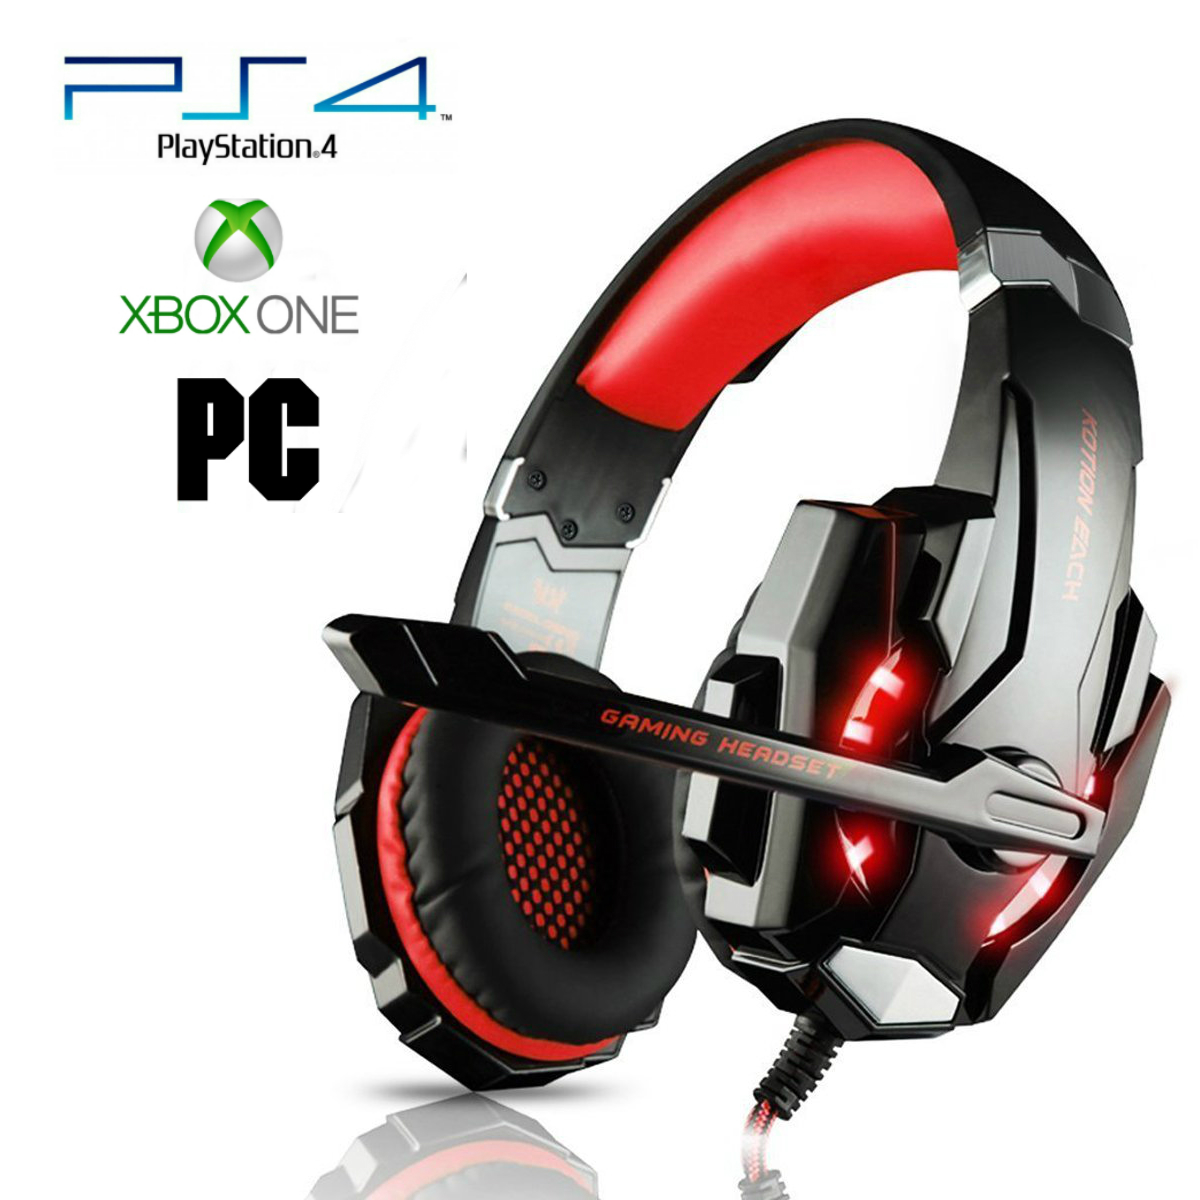 Pro Gamer PS4 Headset for PlayStation 4 Xbox One & PC Computer Red  Headphones | Flor1dausa